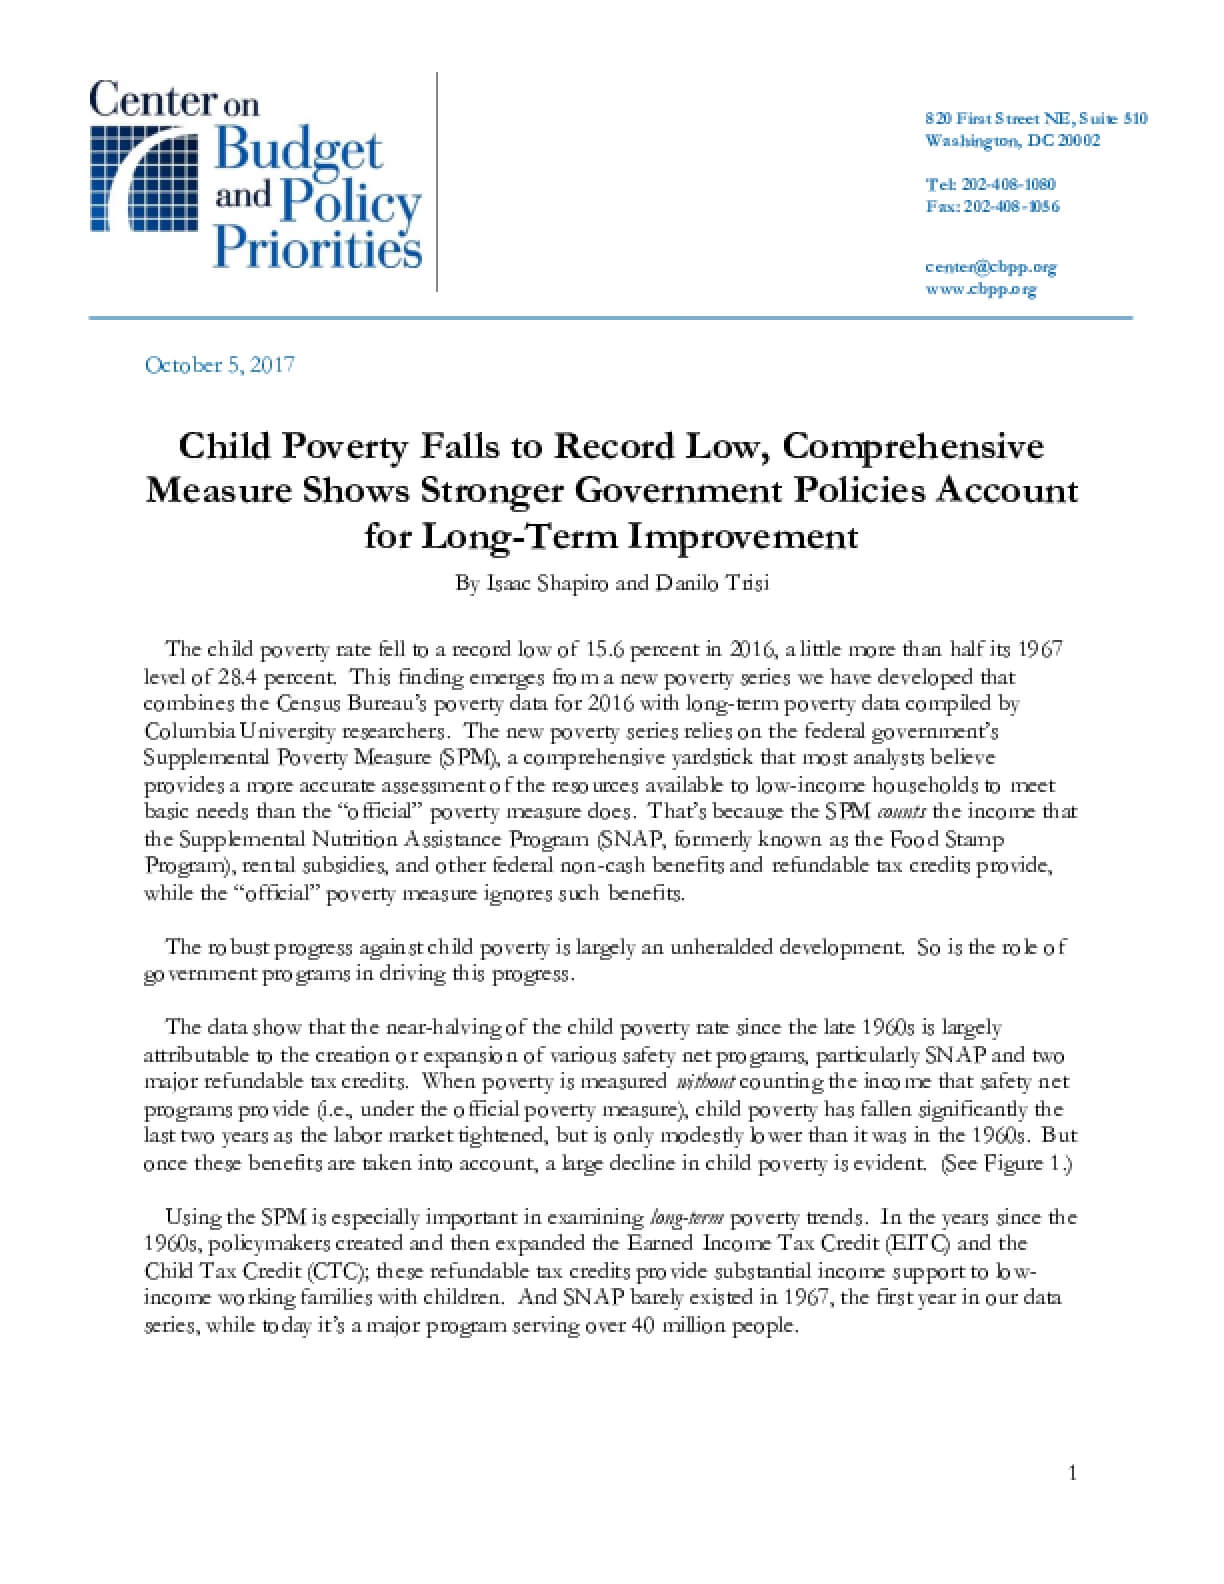 Child Poverty Falls to Record Low, Comprehensive Measure Shows Stronger Government Policies Account for Long-term Improvement